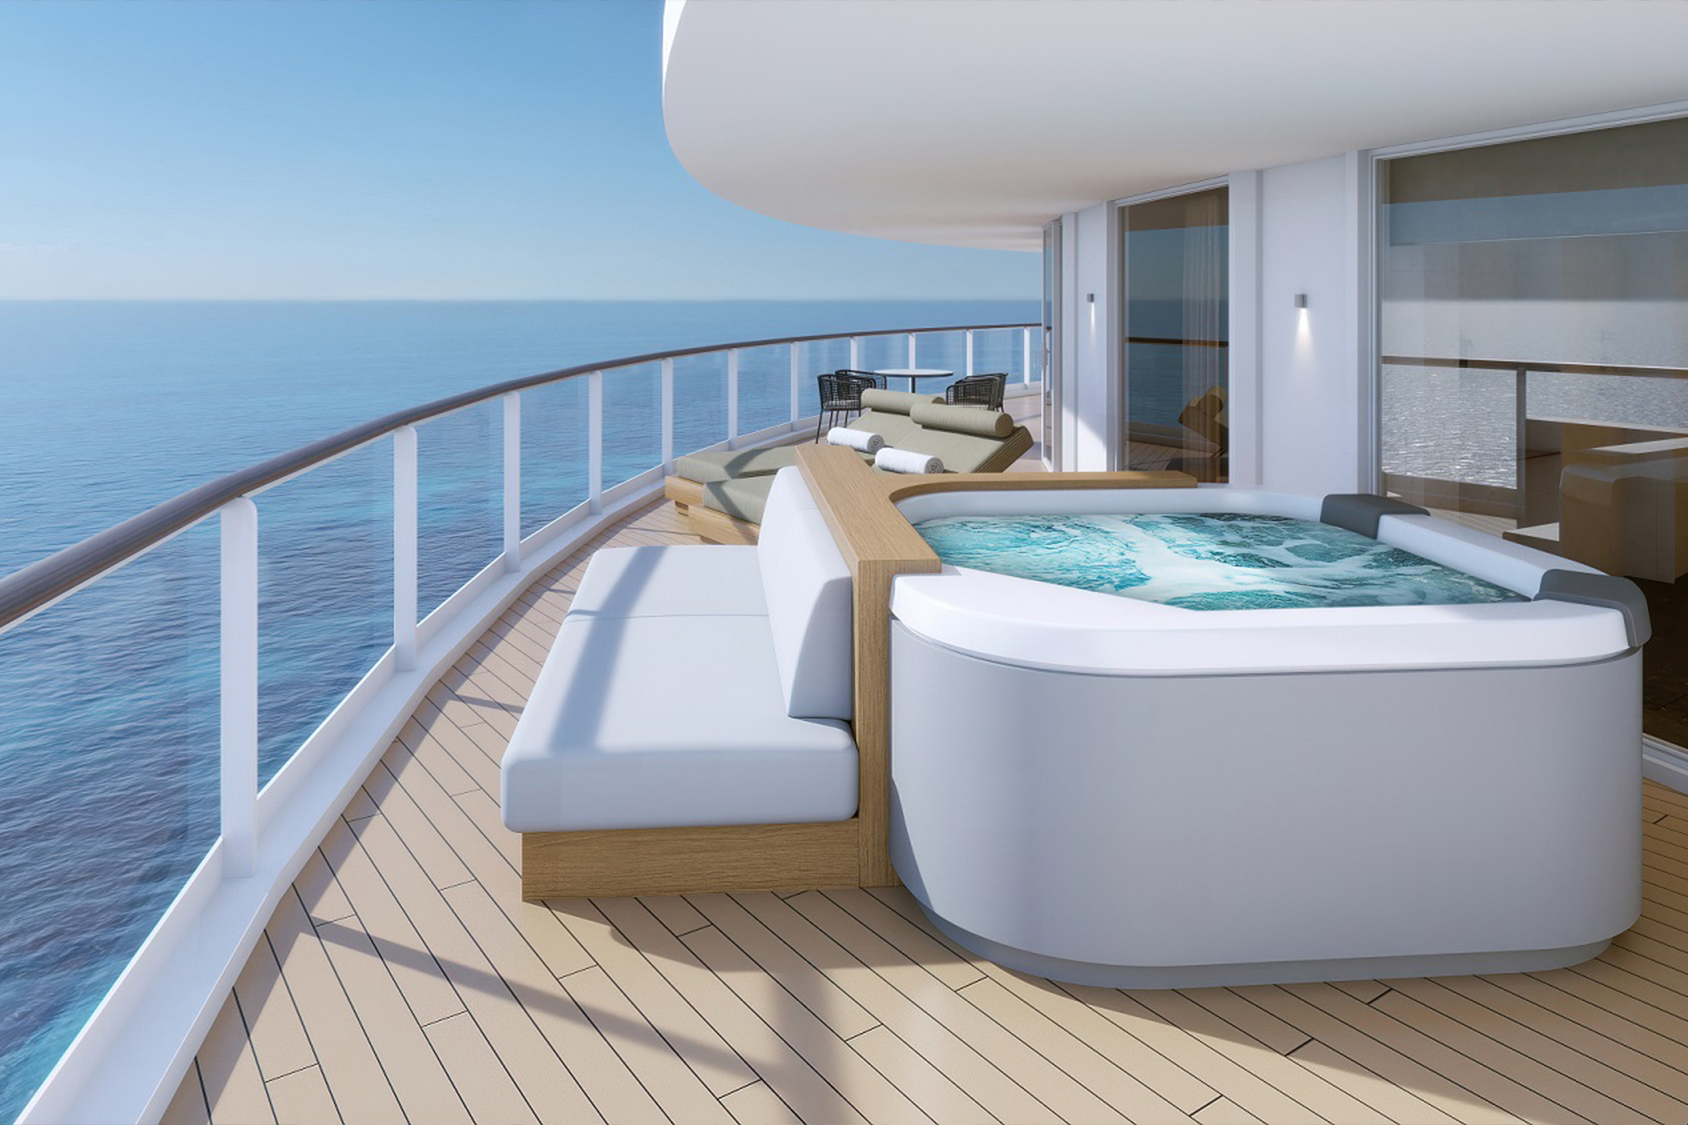 The Haven Deluxe Owner's Suite features a hot tub on the large balcony with an impressive view of the open sea.